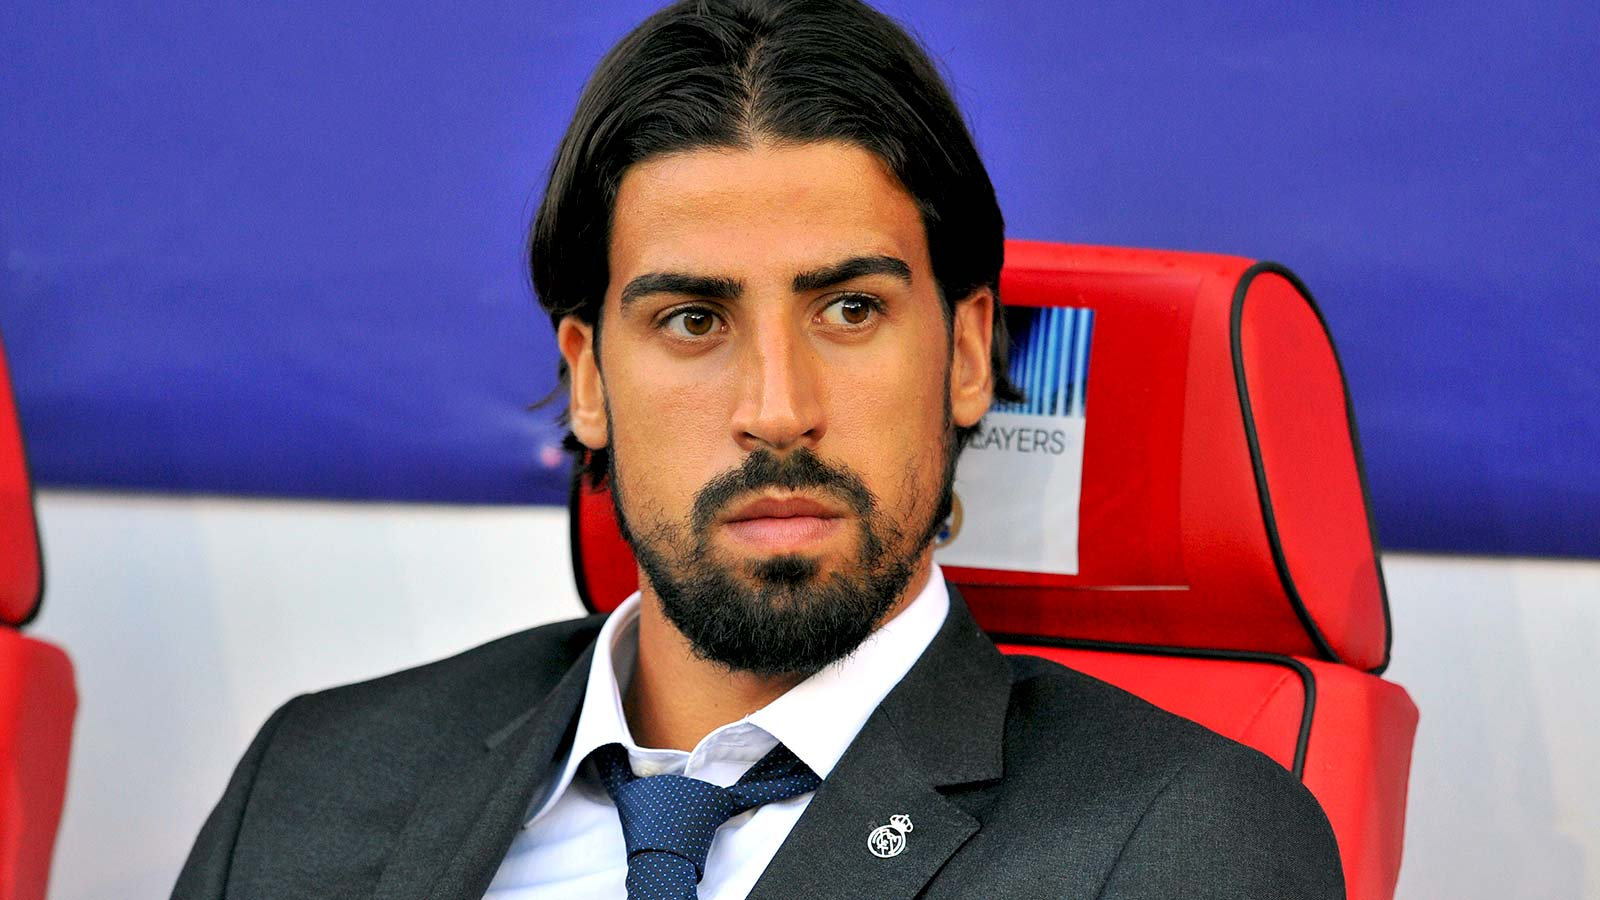 Arsenal faces stiff competition from rivals United for Khedira